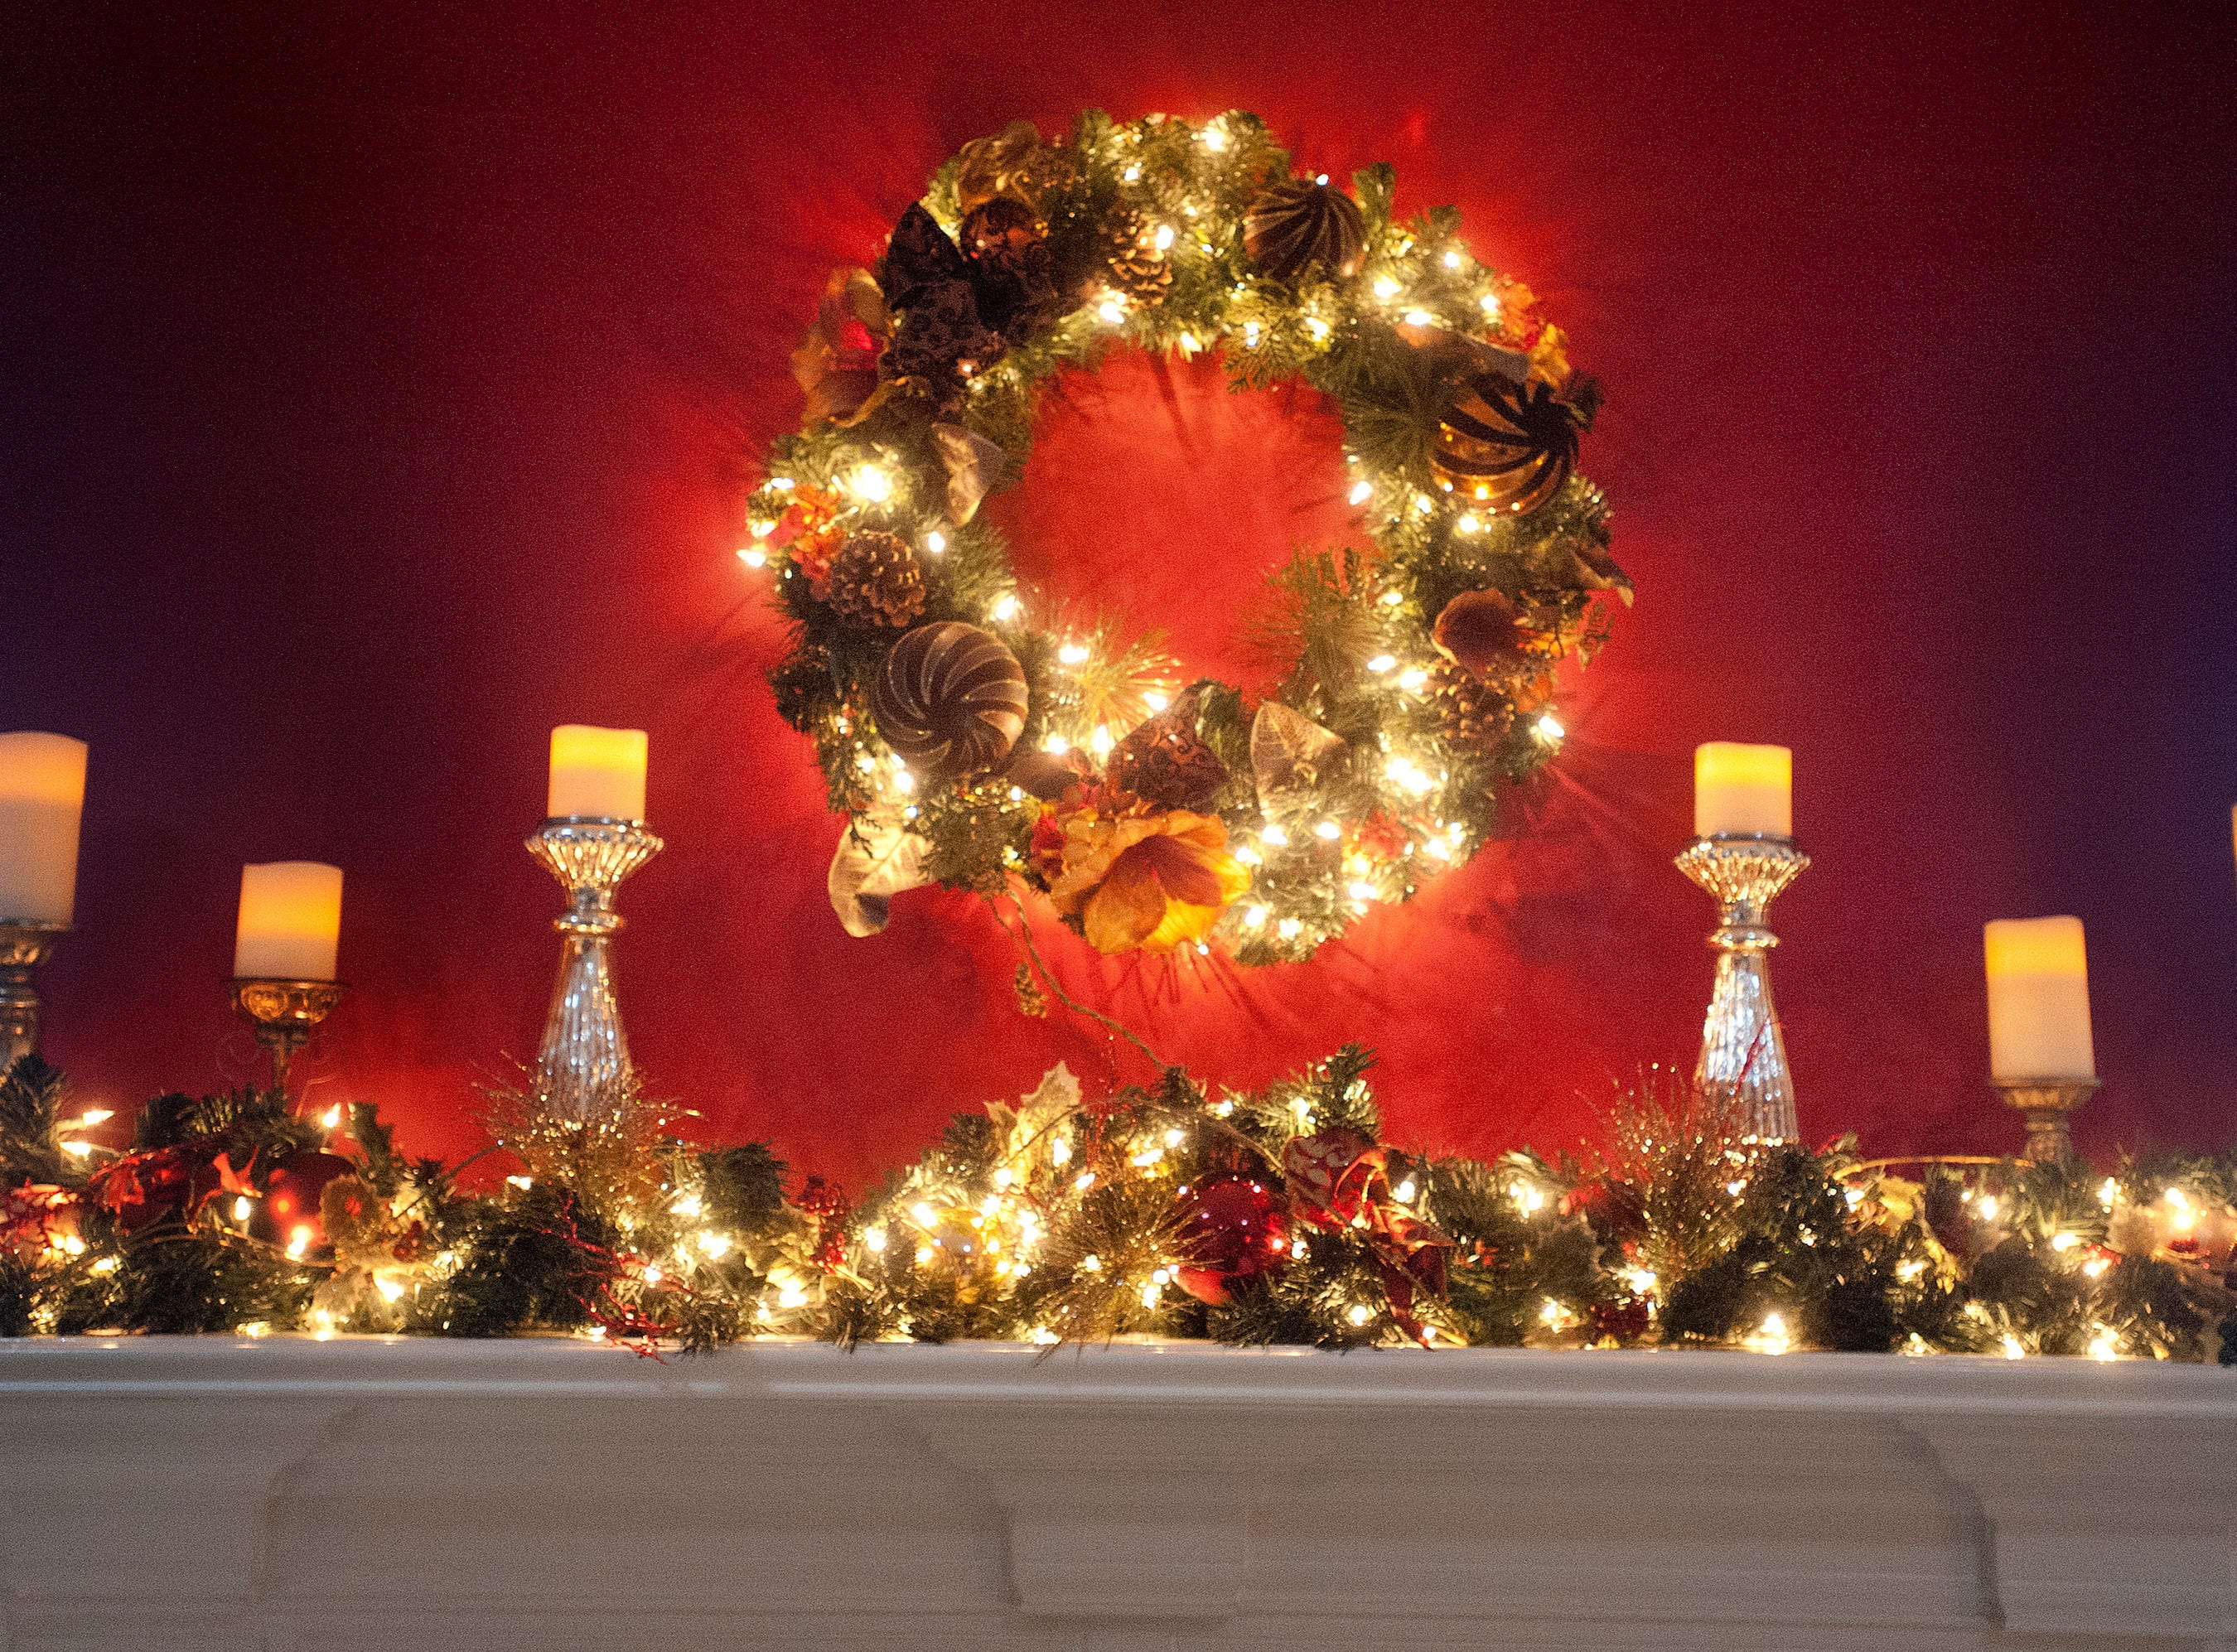 Candles and an illuminated wreath decorate the living room mantel. 